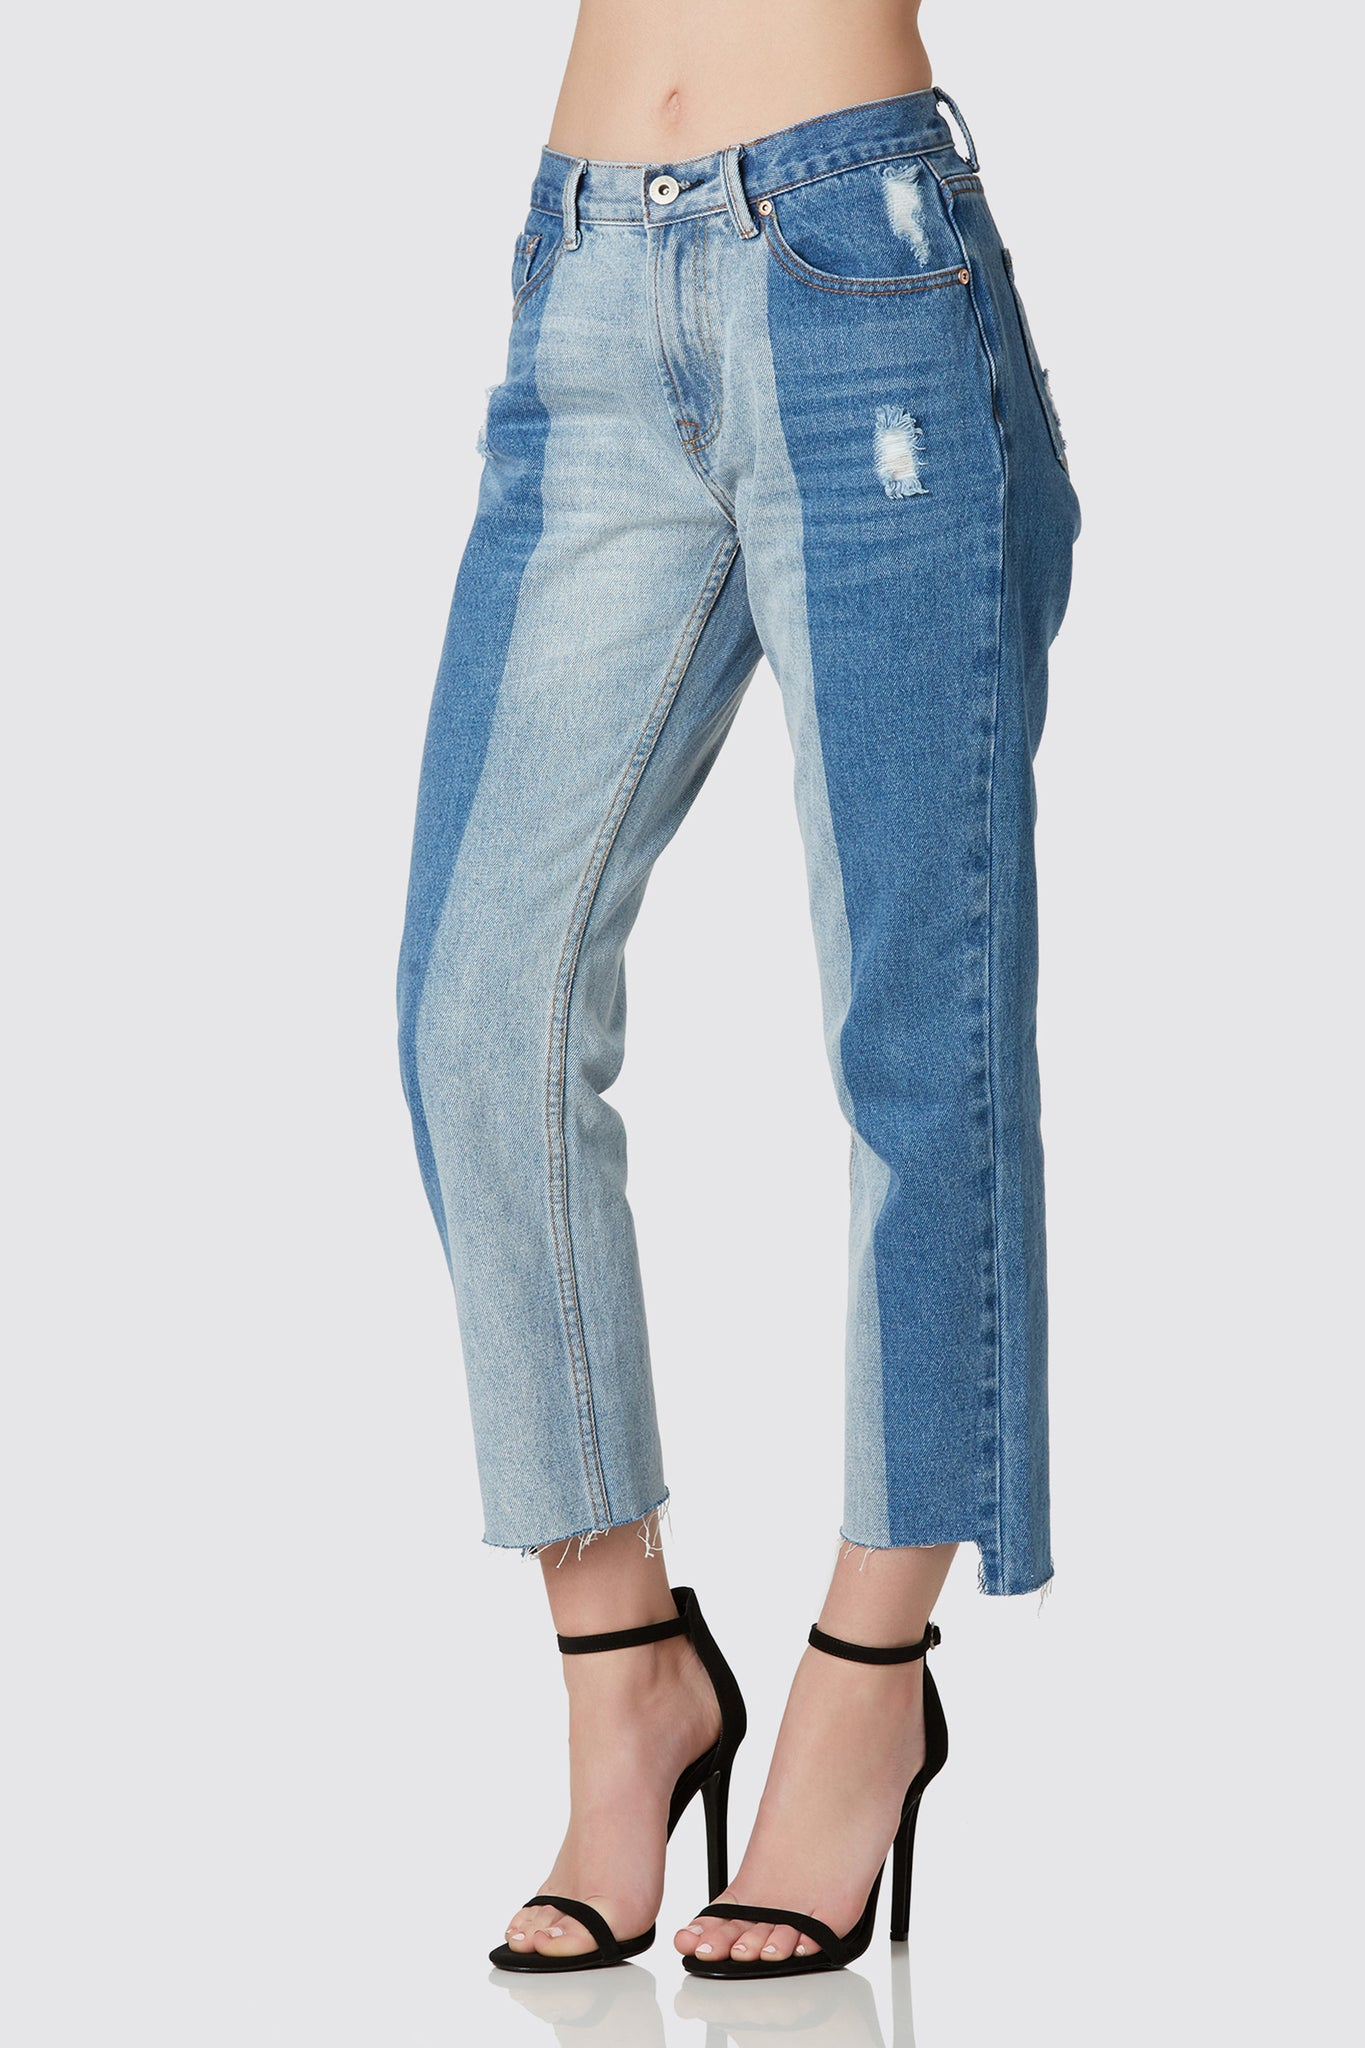 Trendy mom jeans with vintage style two tone effect. Soft distressing with uneven step hem finish.